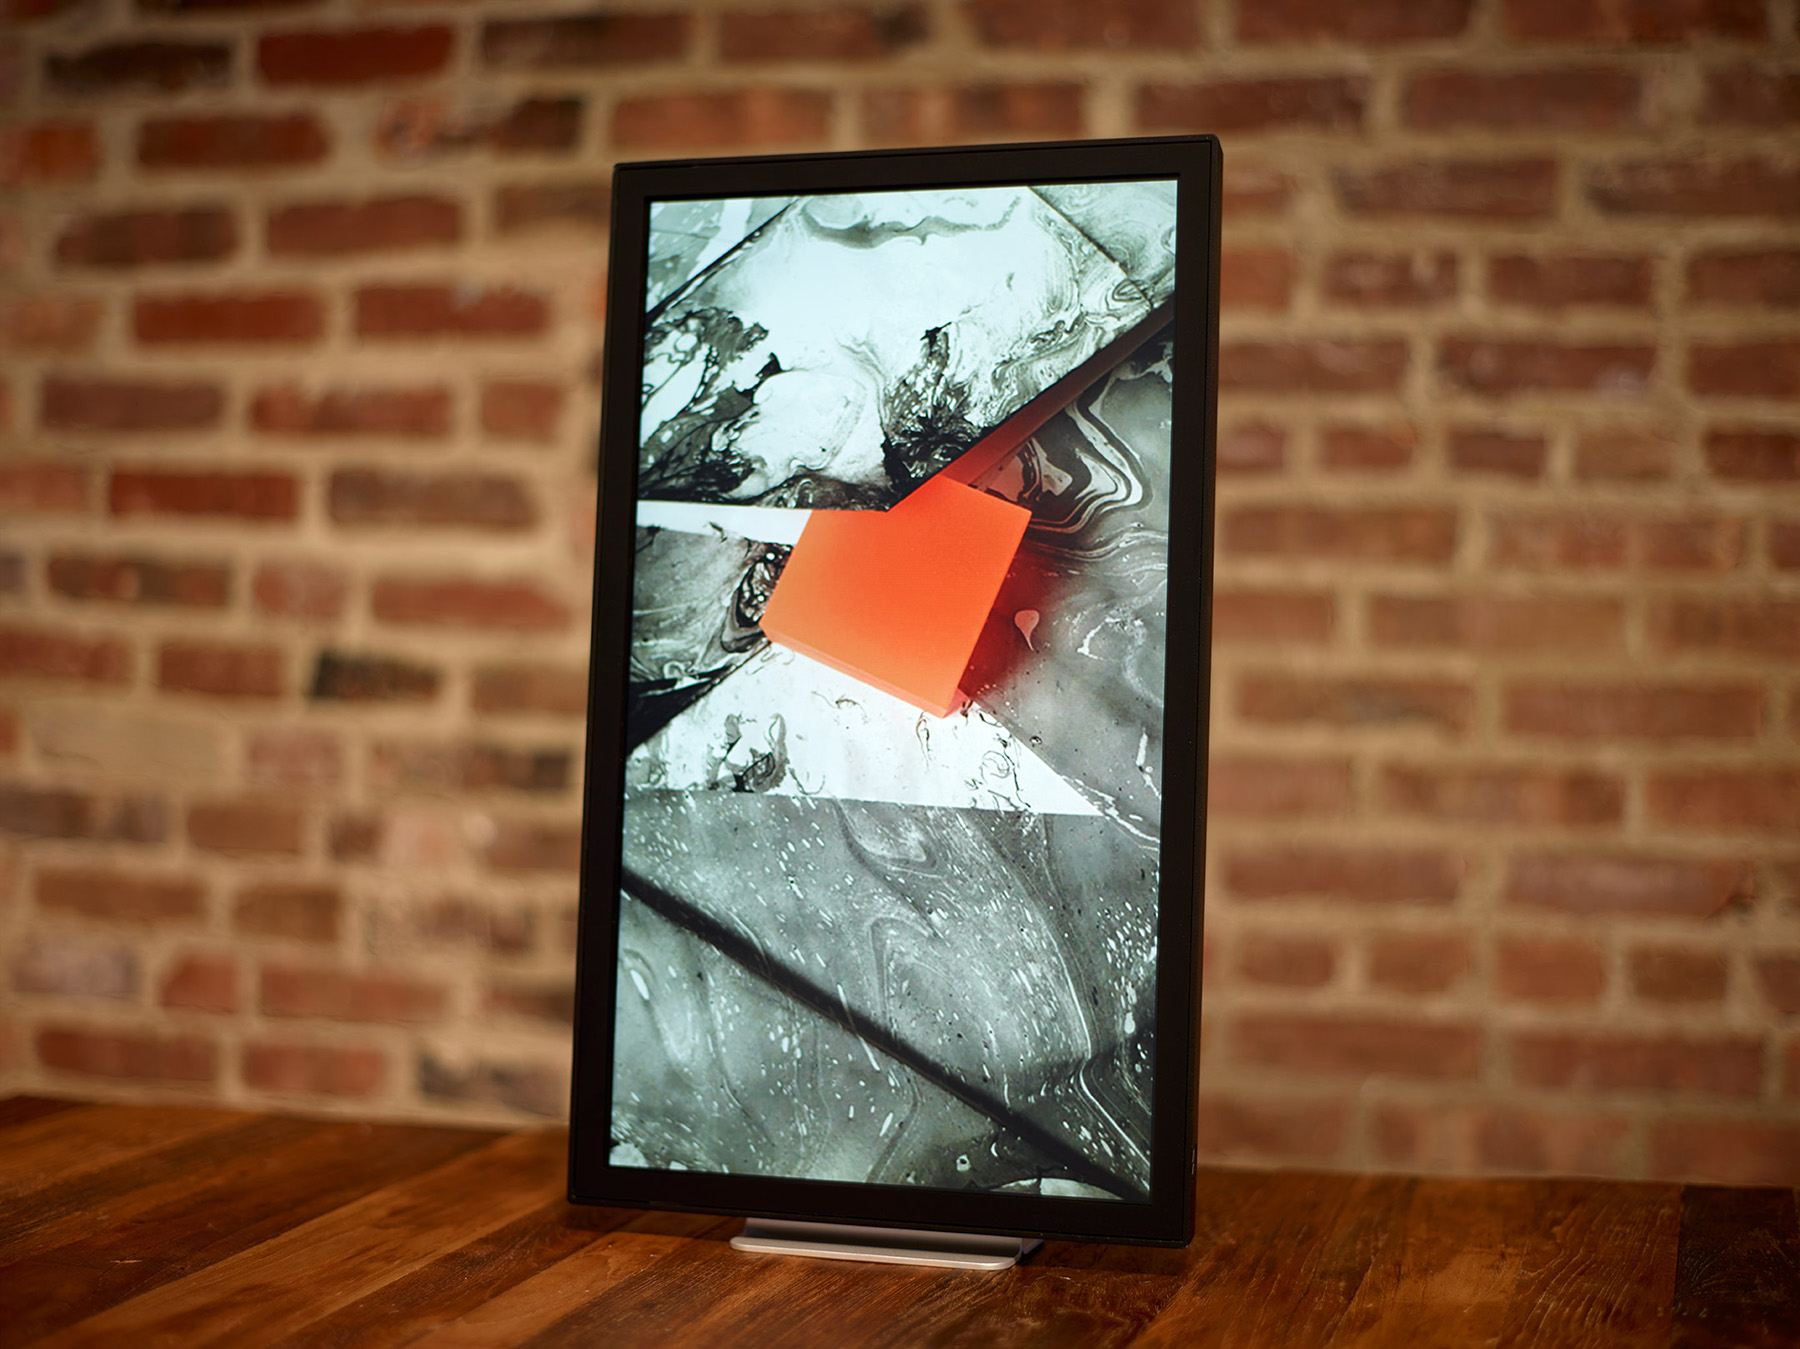 Decorate Your Walls With the Internet: The EO1 Photo Frame